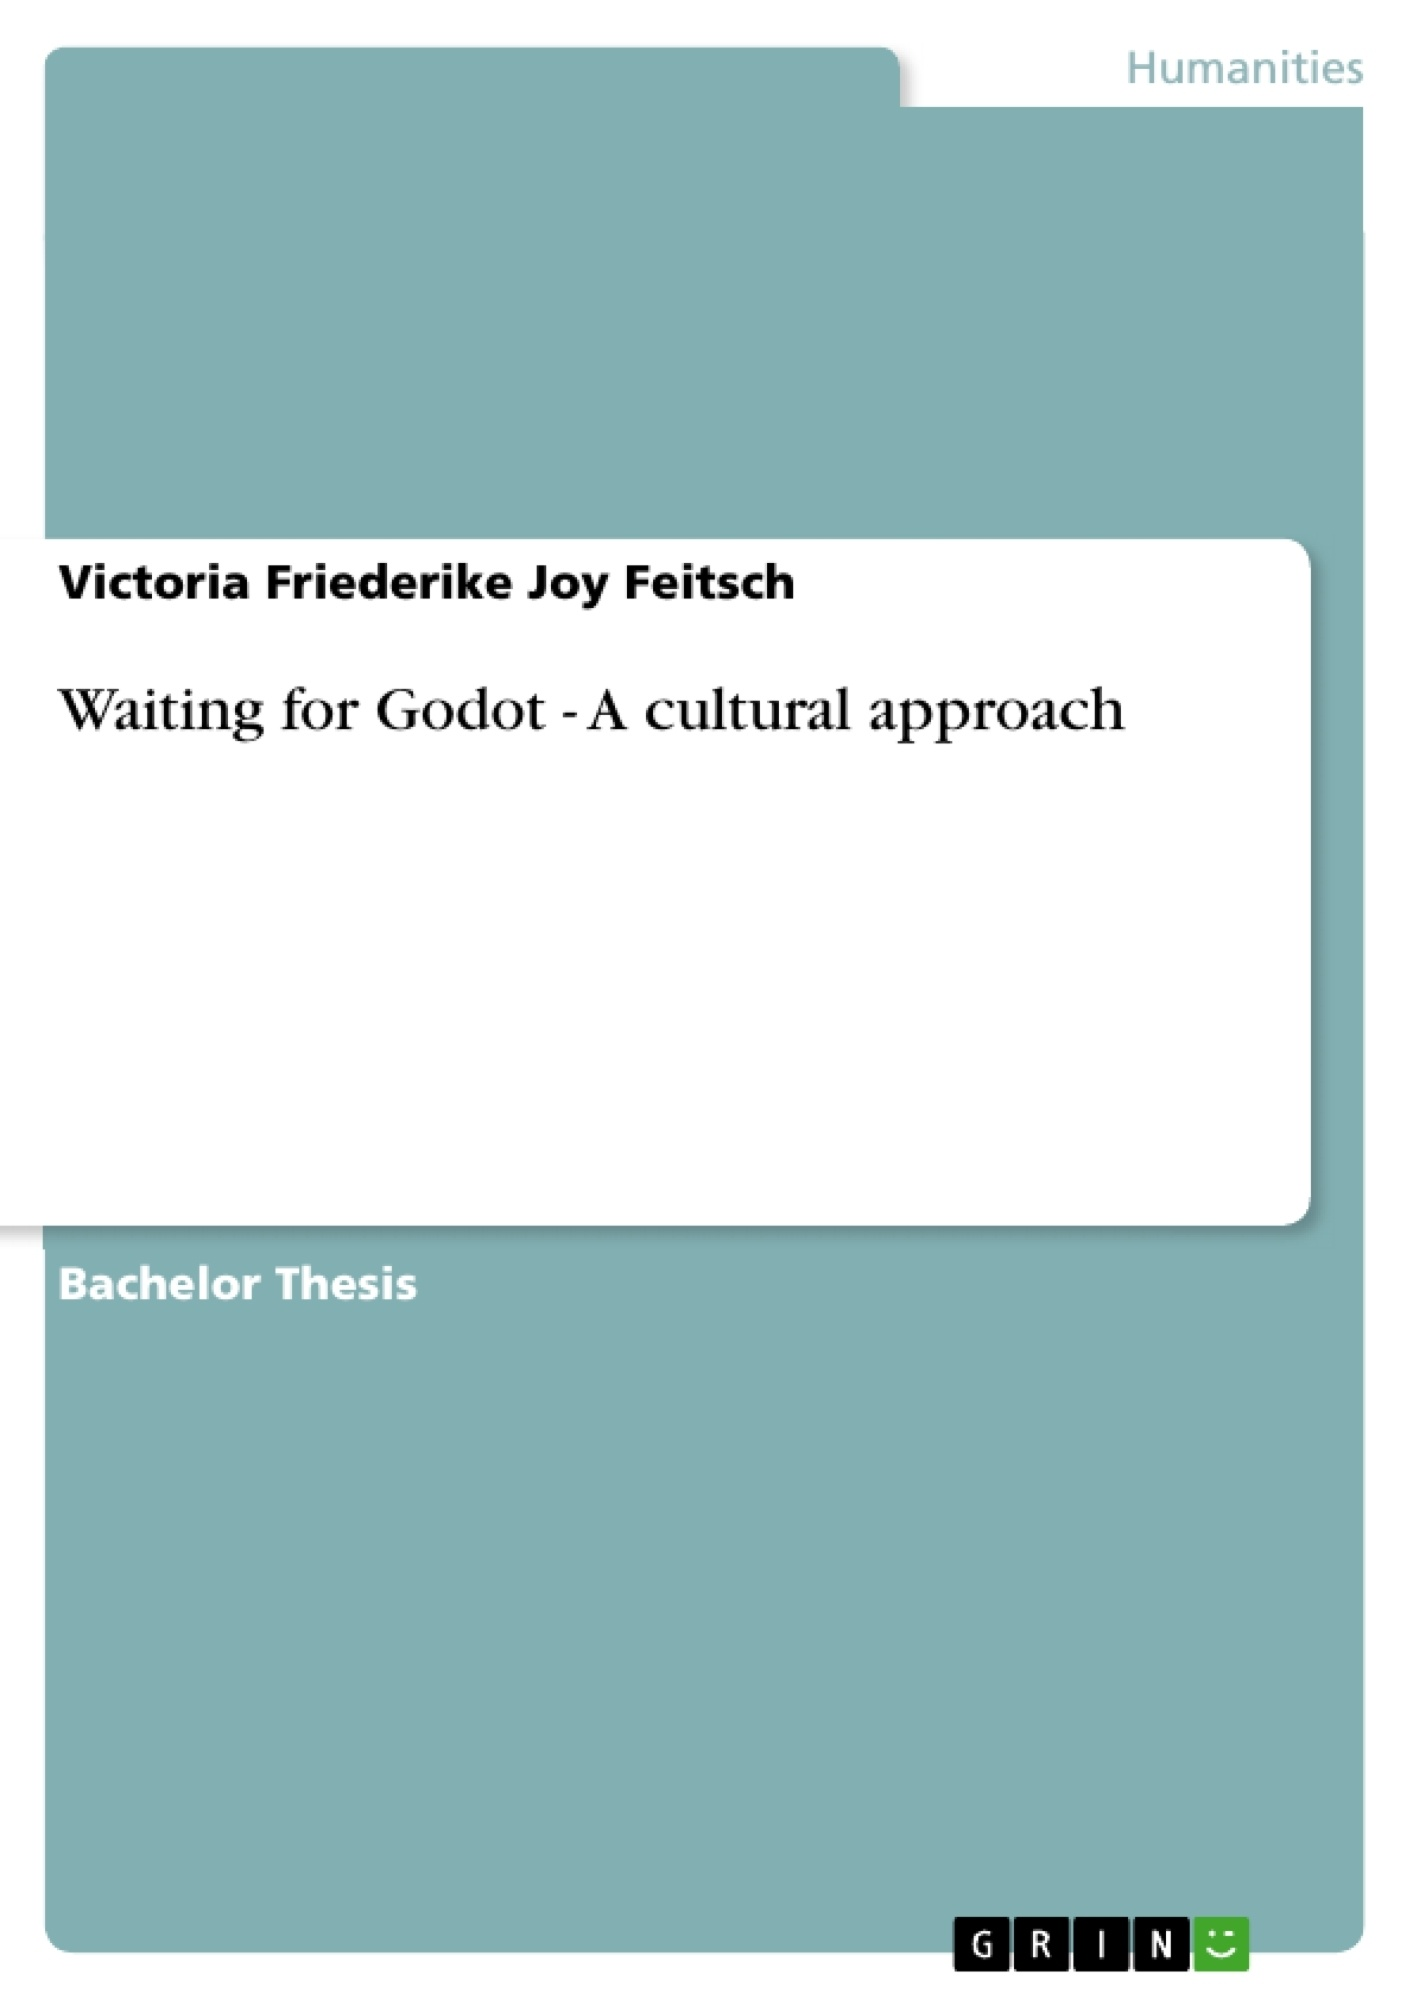 Title: Waiting for Godot - A cultural approach